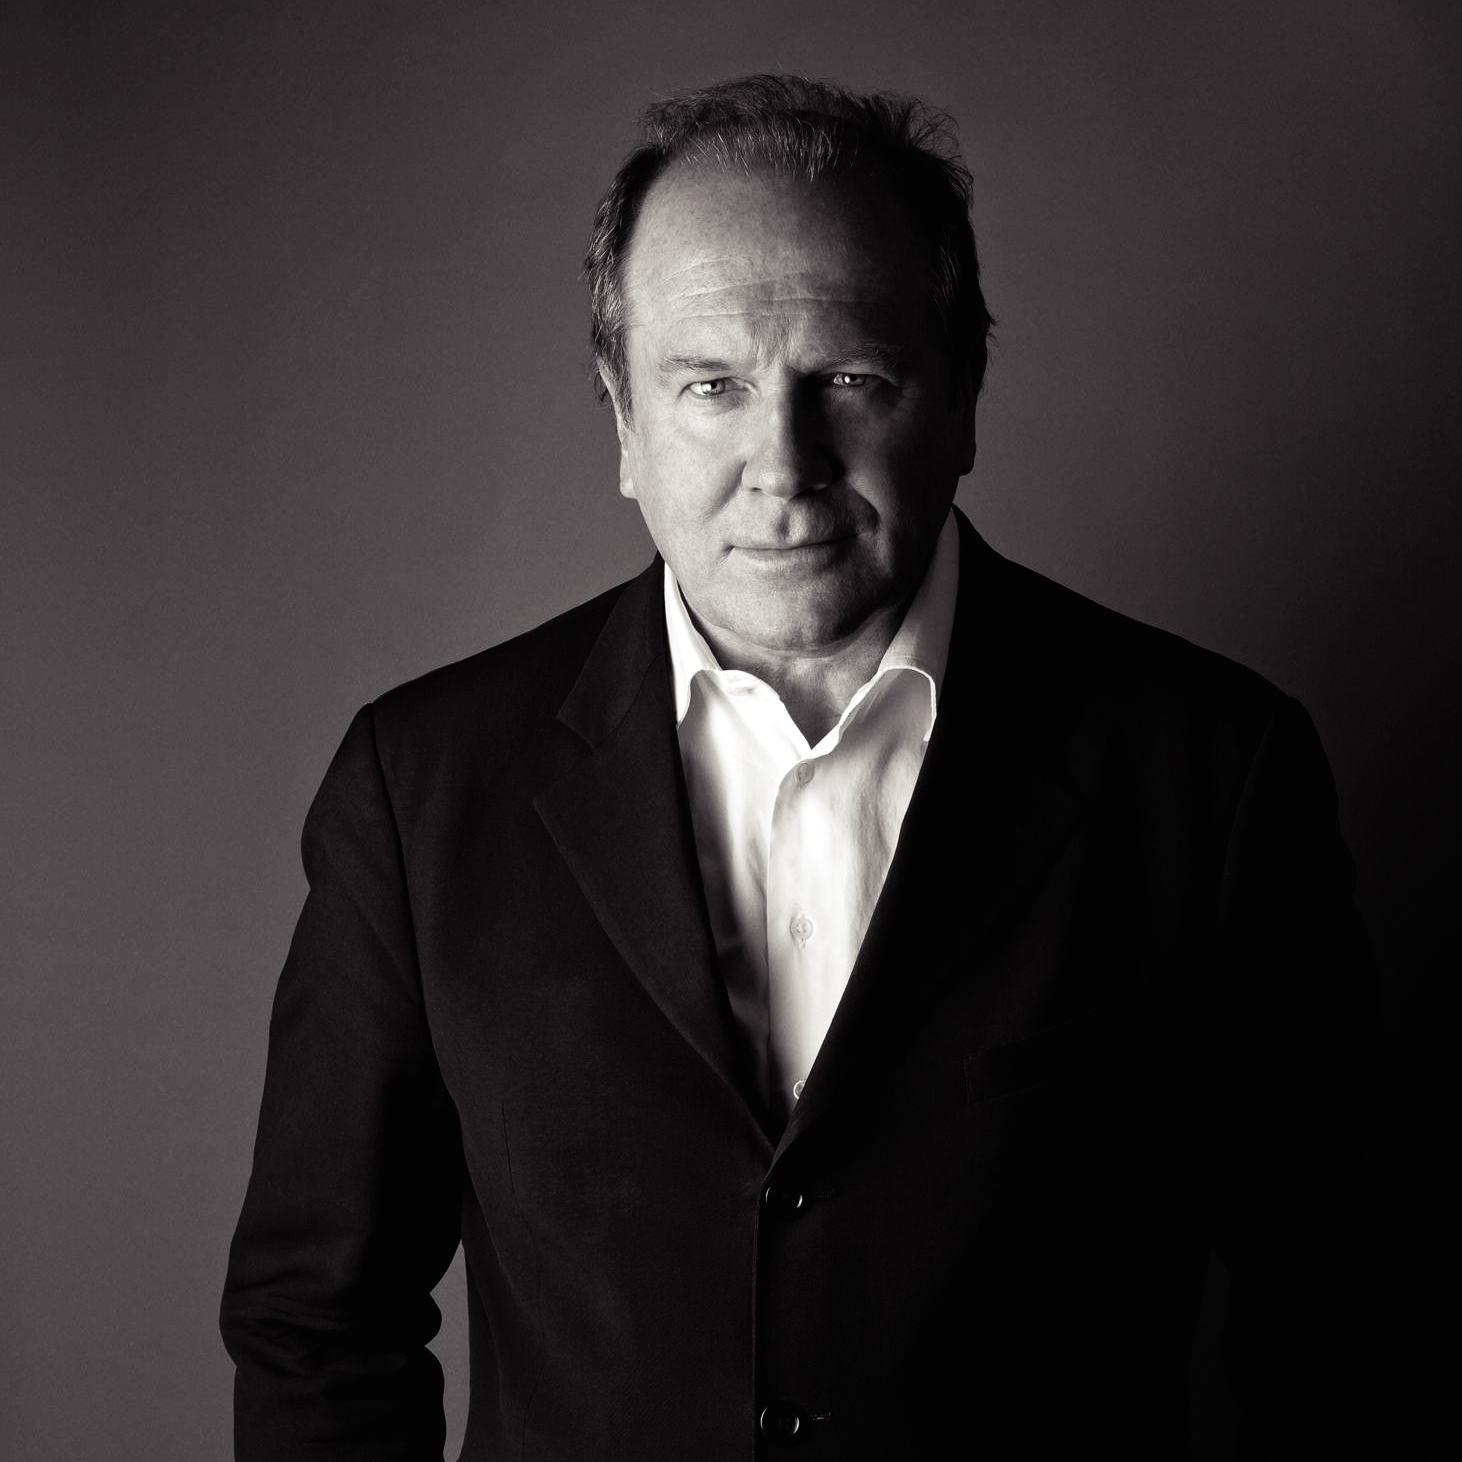 William Boyd has written a dozen novels, including Any Human Heart, which features James Bond creator Ian Fleming as a character.